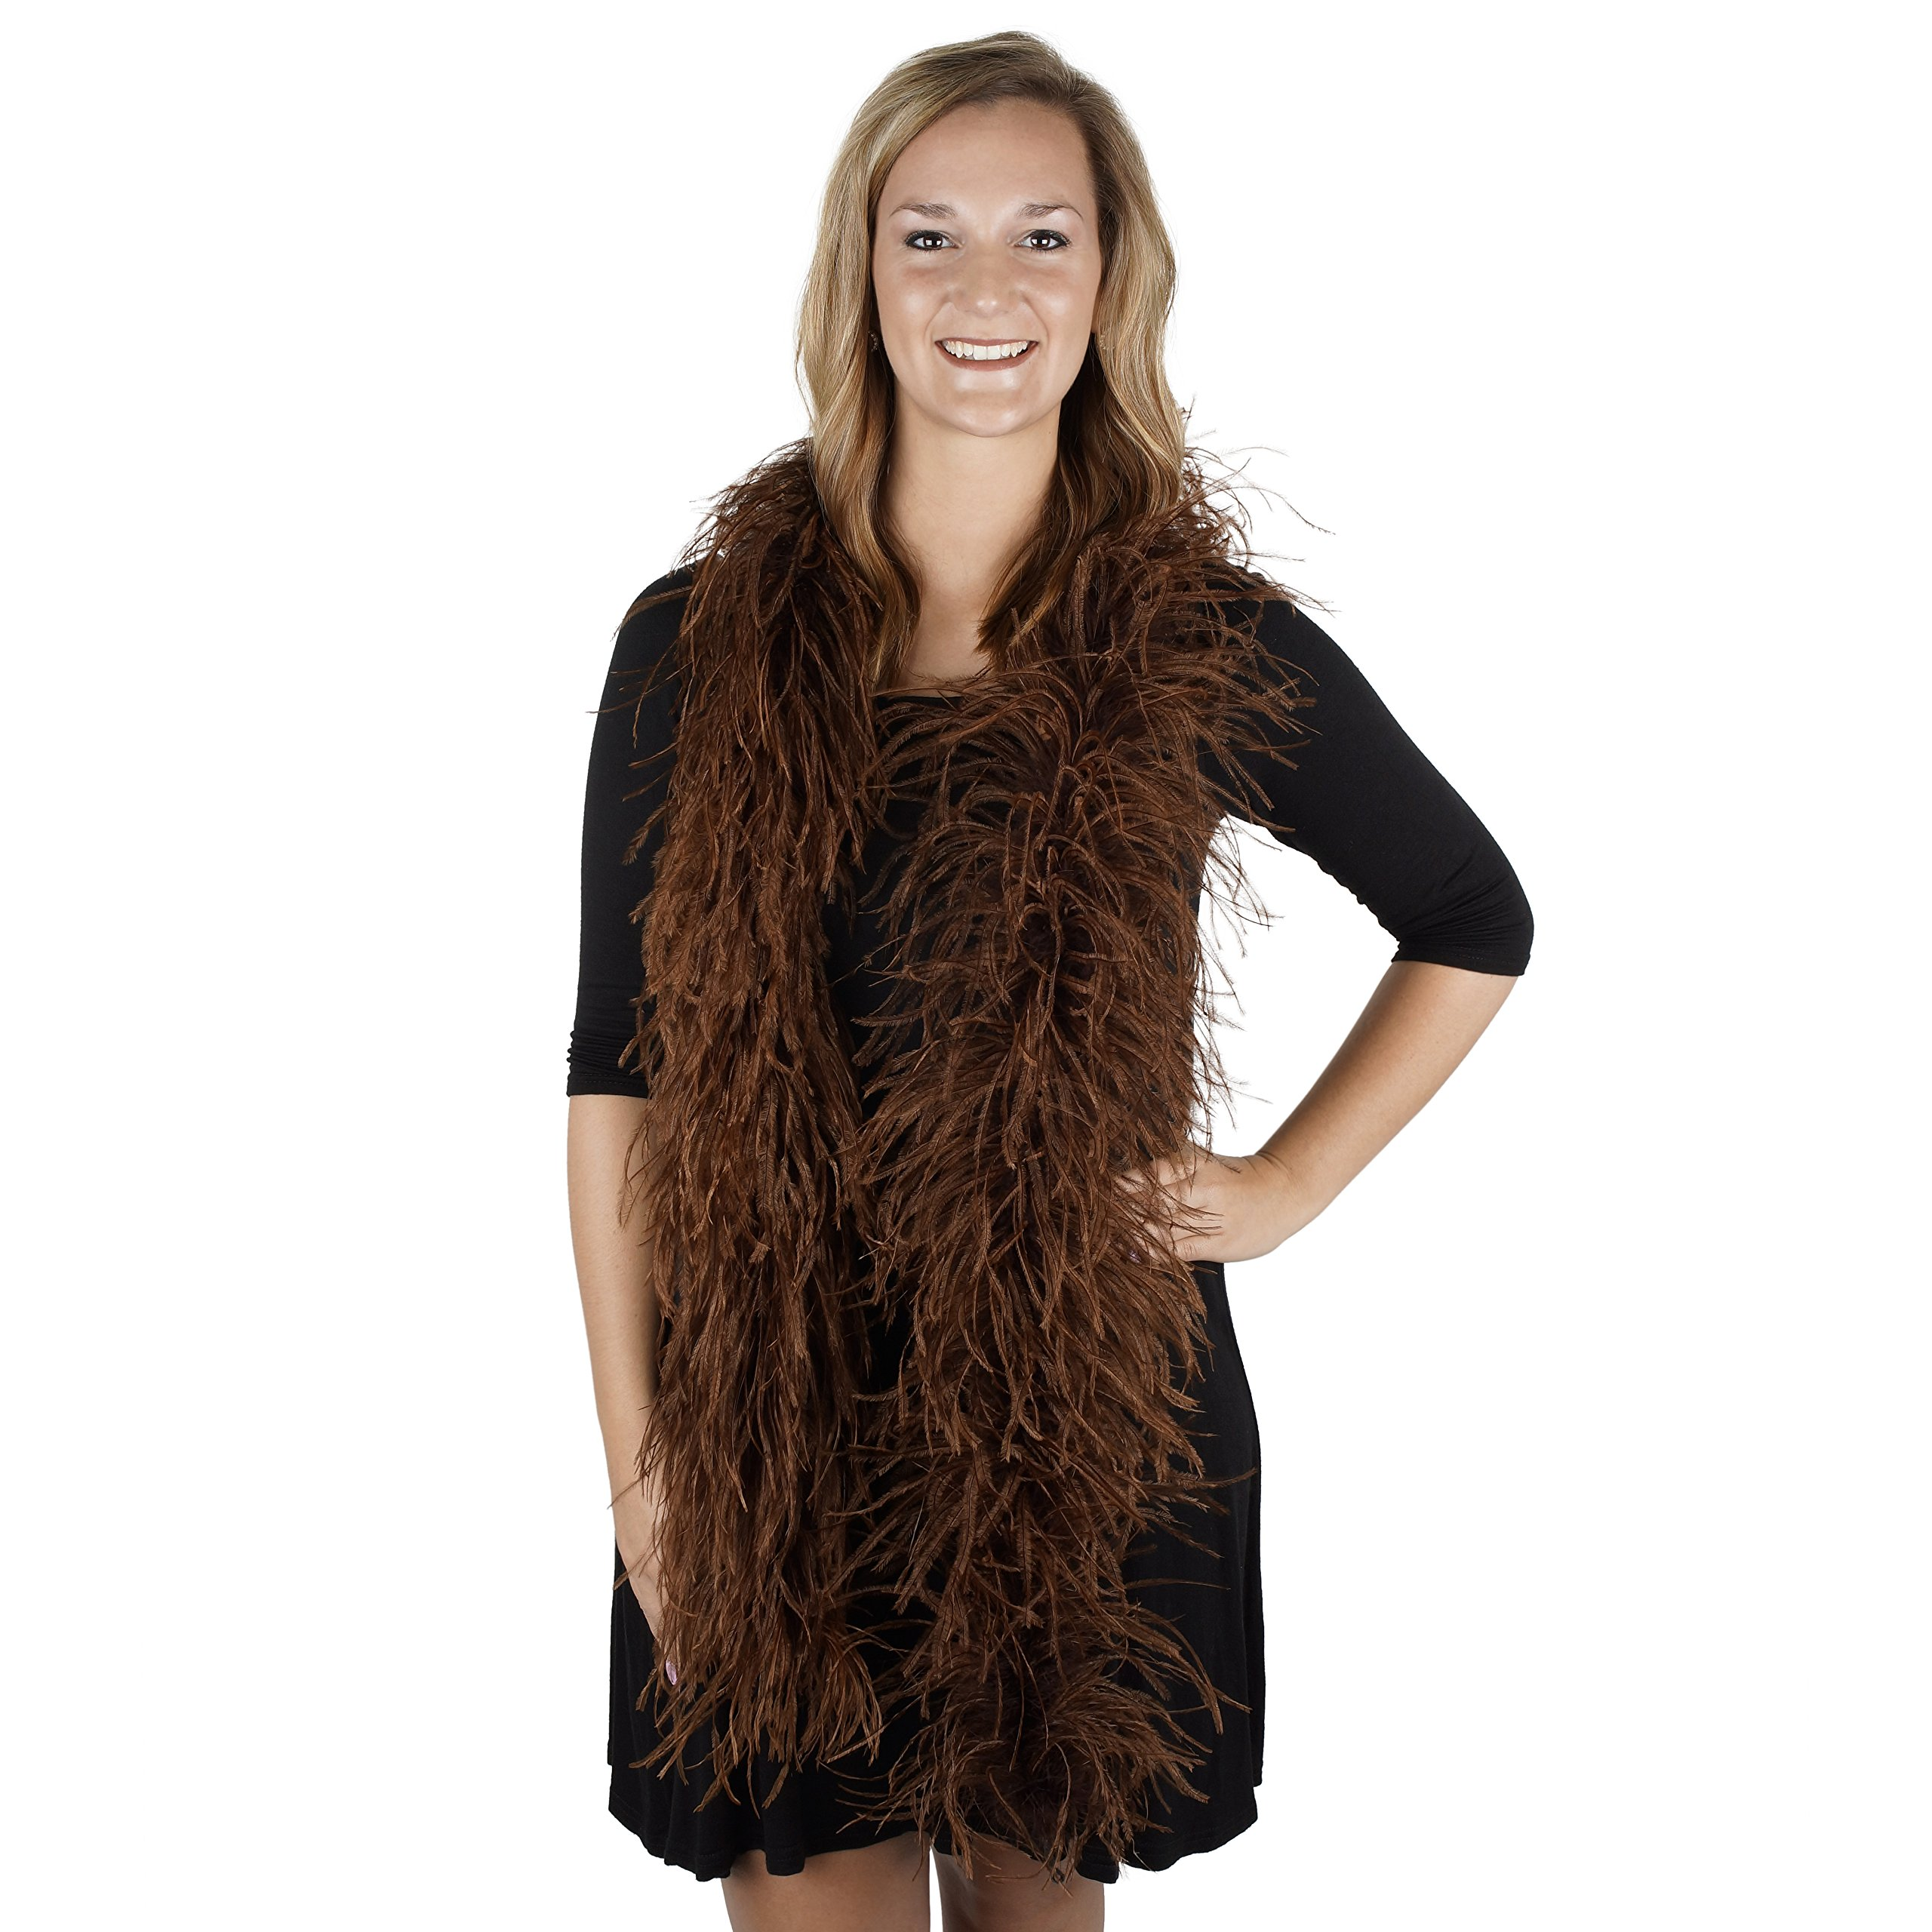 Zucker Feather Products Ostrich 2-Ply Boa for Decoration, Brown